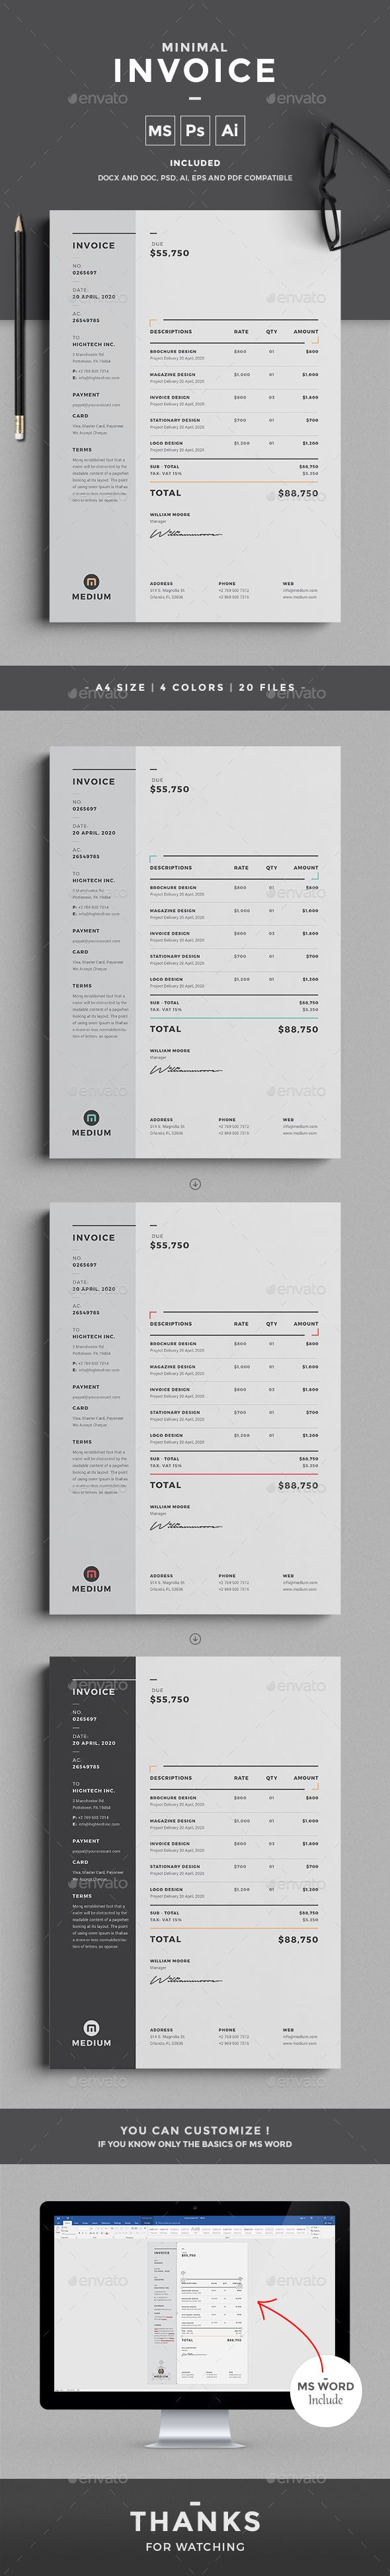 invoice by design park this professional minimal invoice template